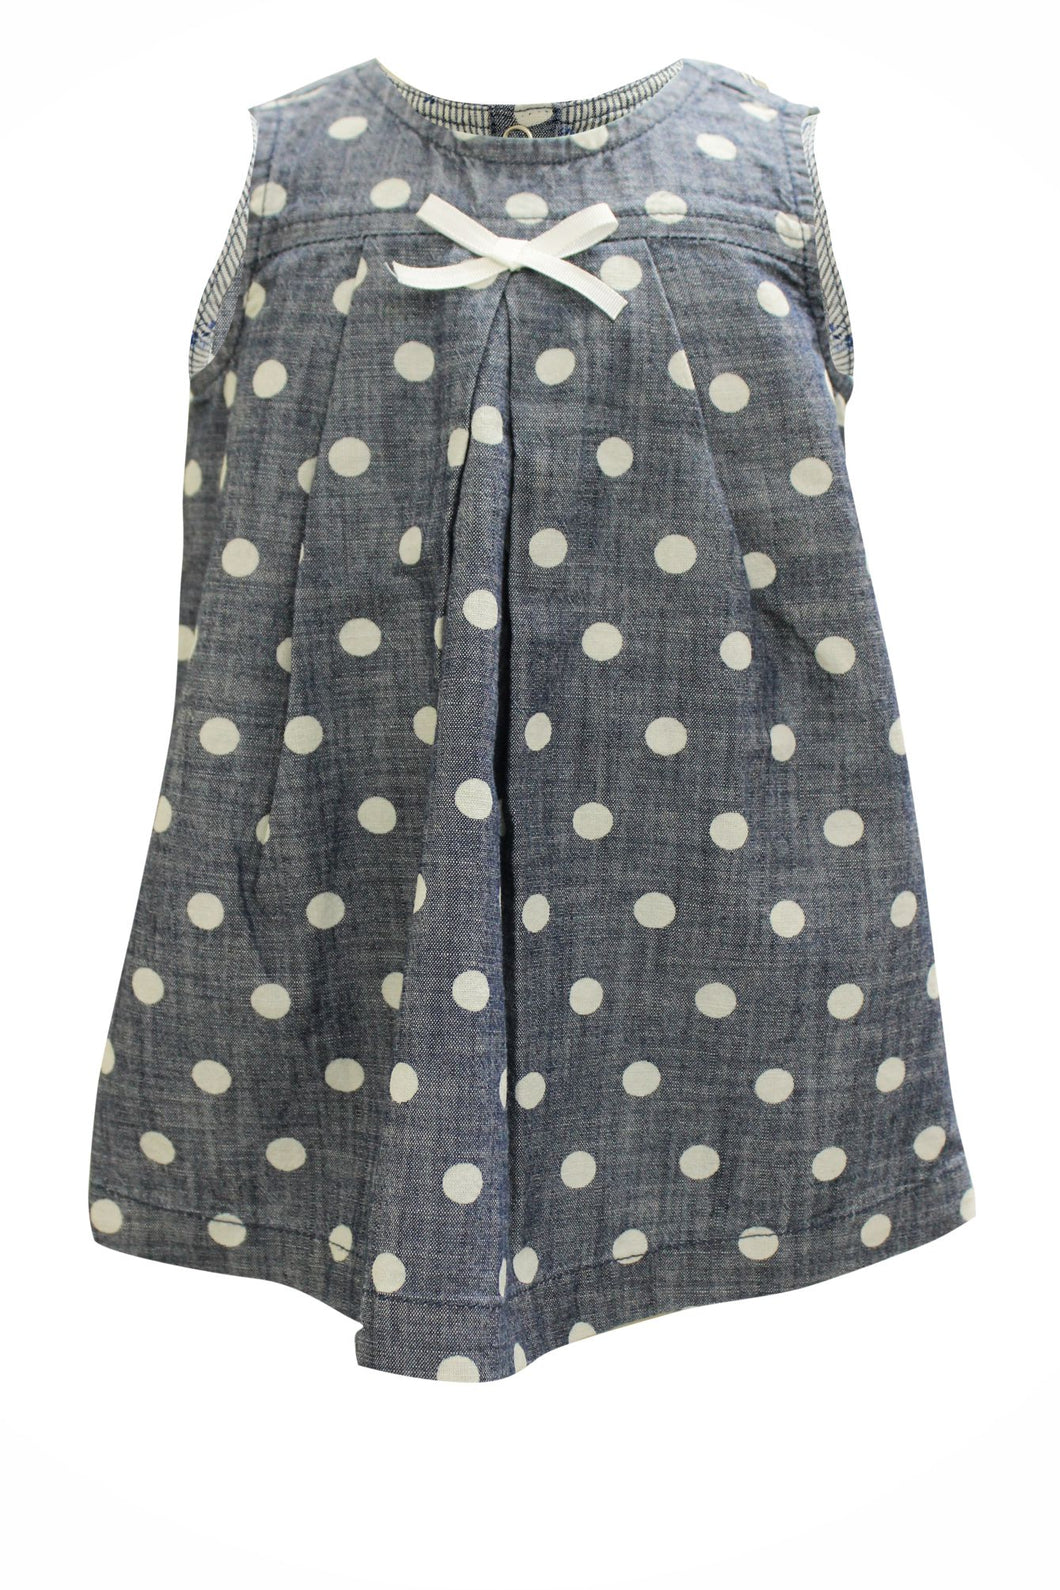 Melody Polka Dot Dress